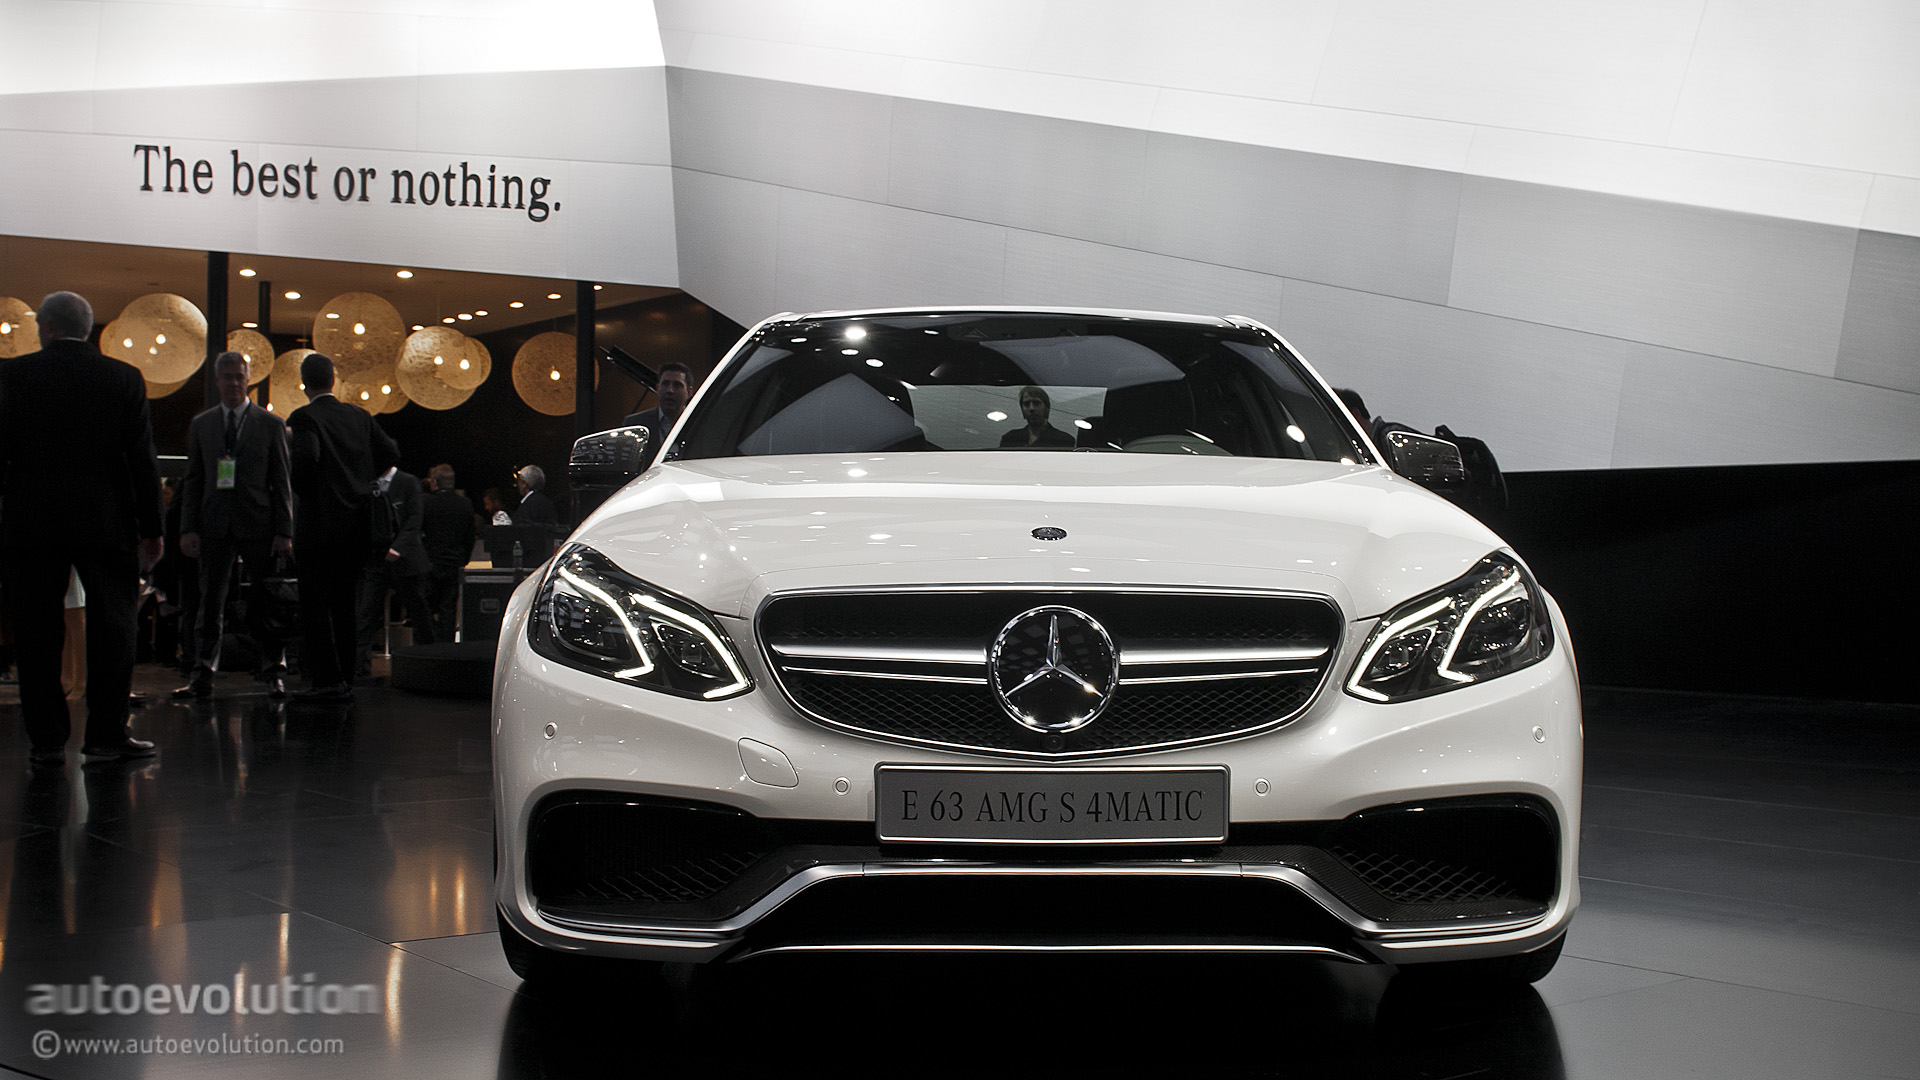 Most Expensive Mercedes >> Wallpaper Collection: Cool Cars With LED Headlights ...